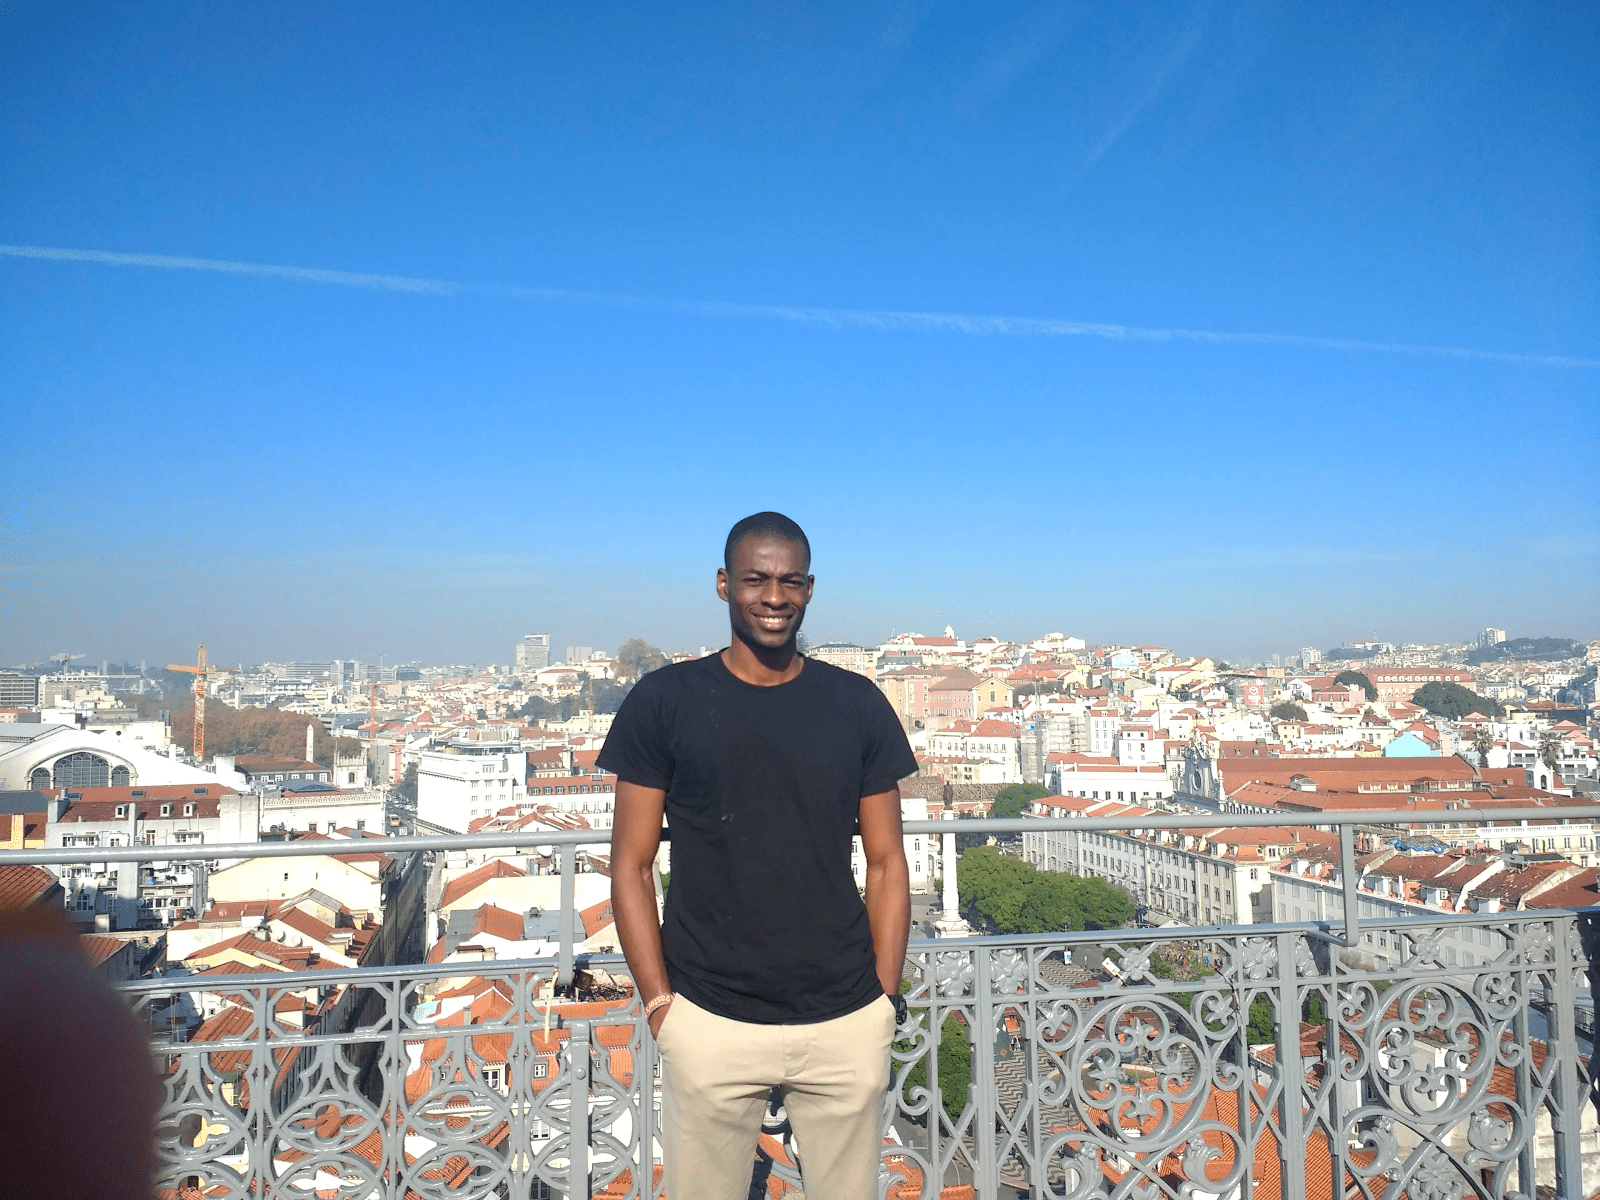 Tomiwa in Lisbon, December 2018